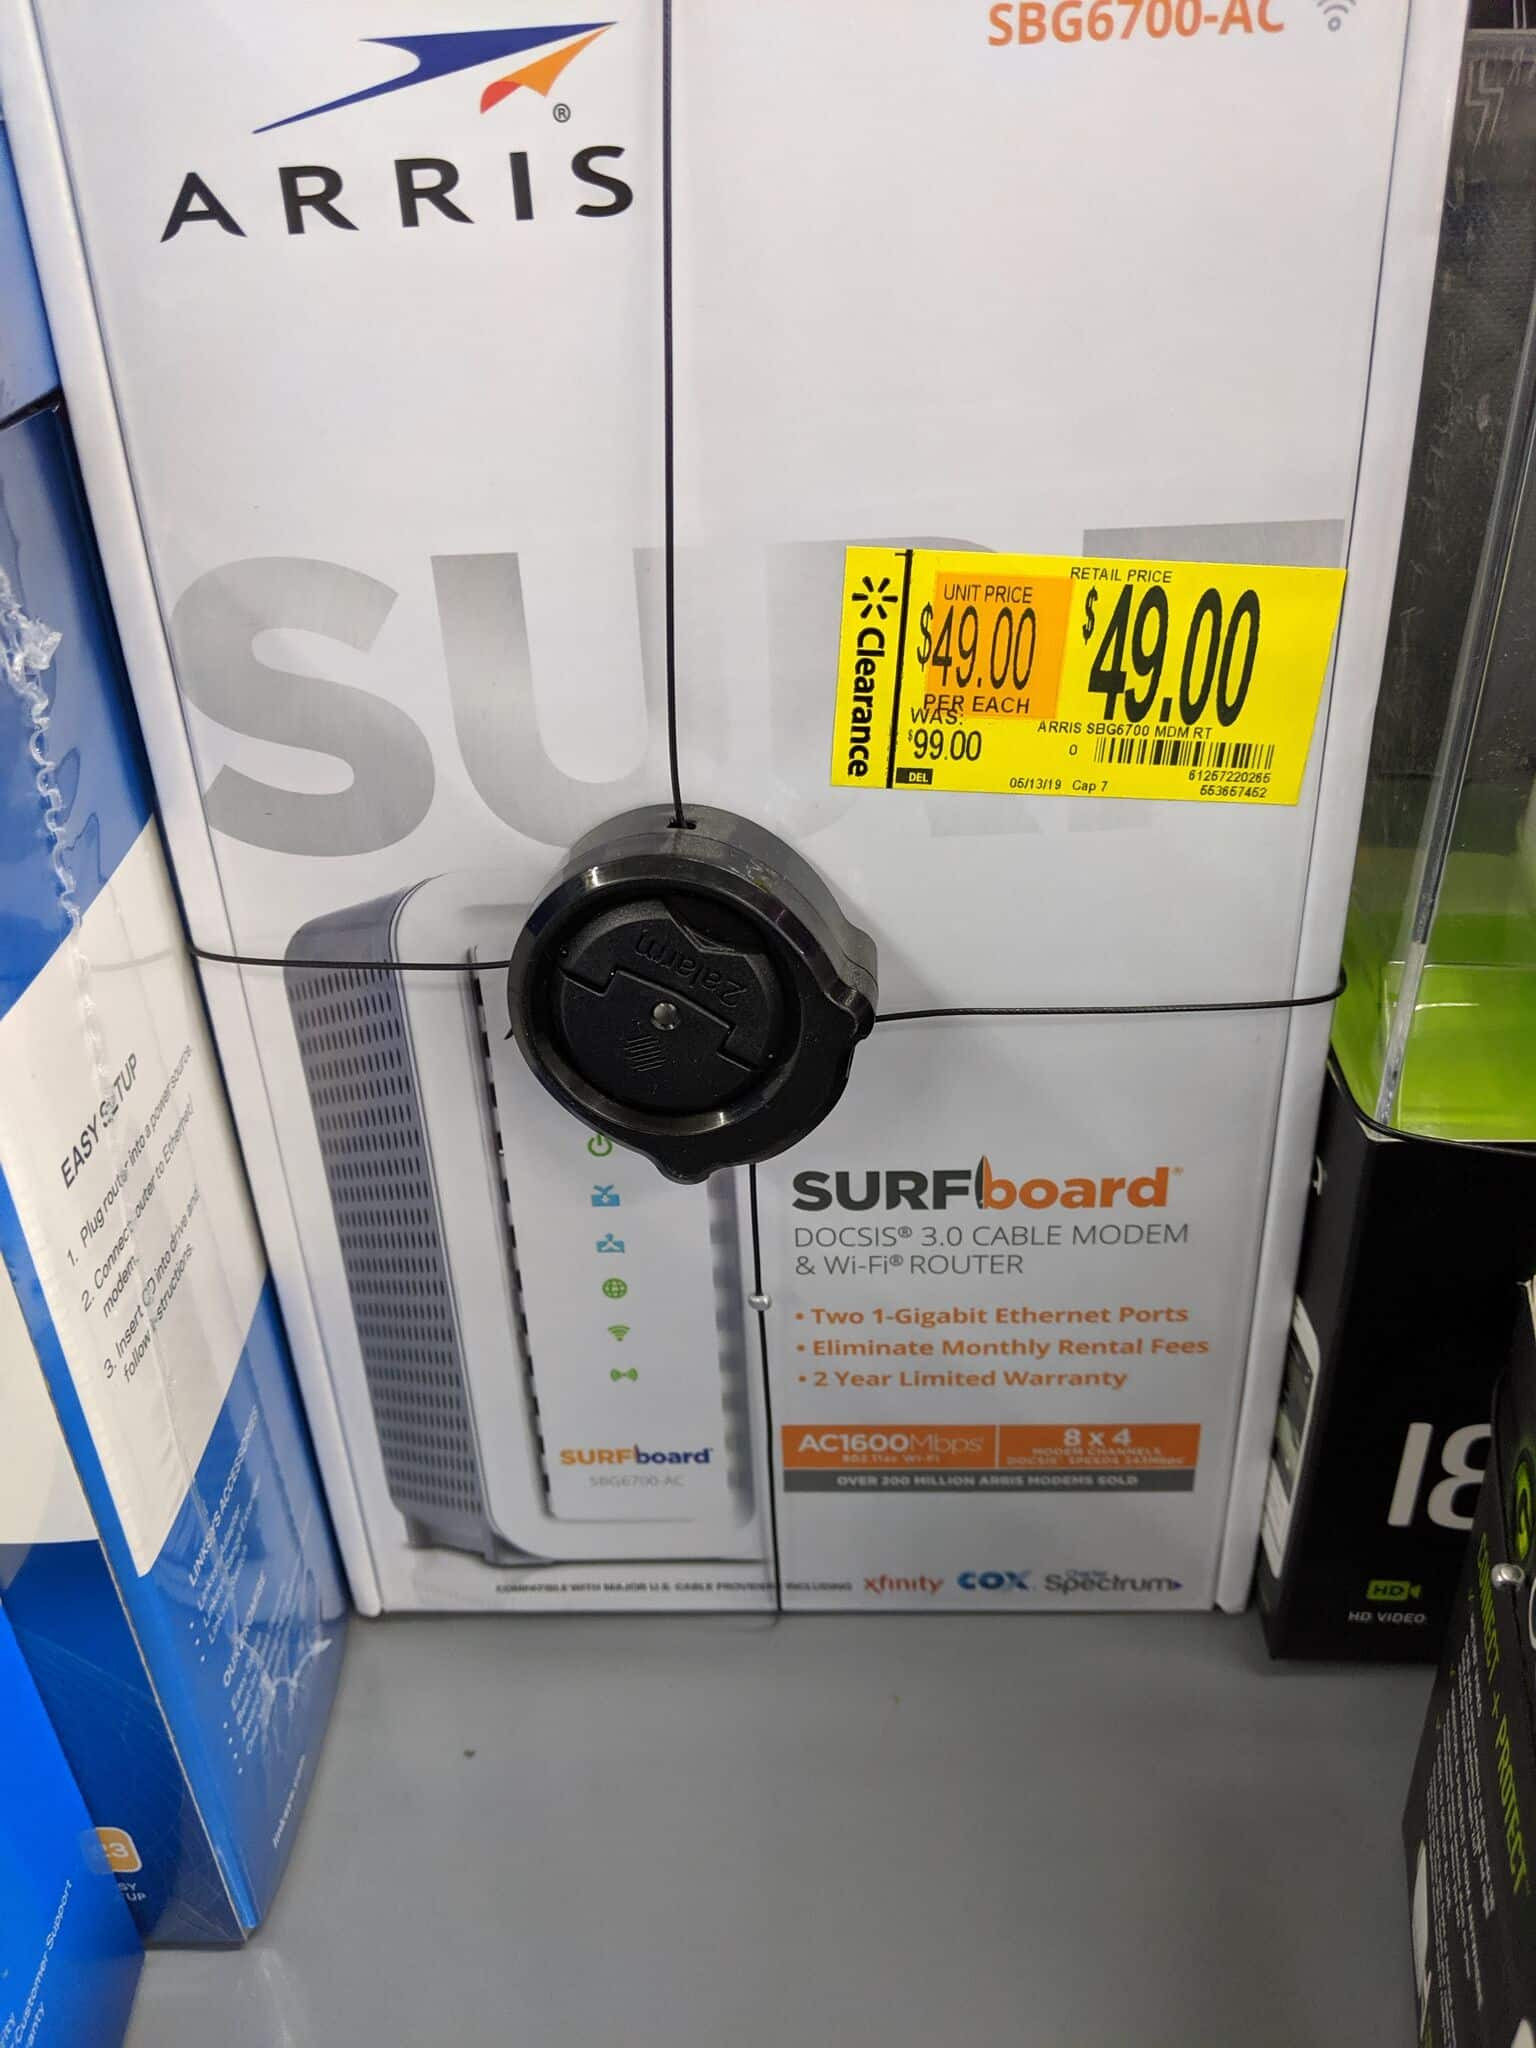 Motorola SBG6700 ARRIS Surfboard (8x4) DOCSIS 3 0 Cable Modem Plus AC1600  Dual Band Wi-Fi Router In Store Clearance YMMV $49